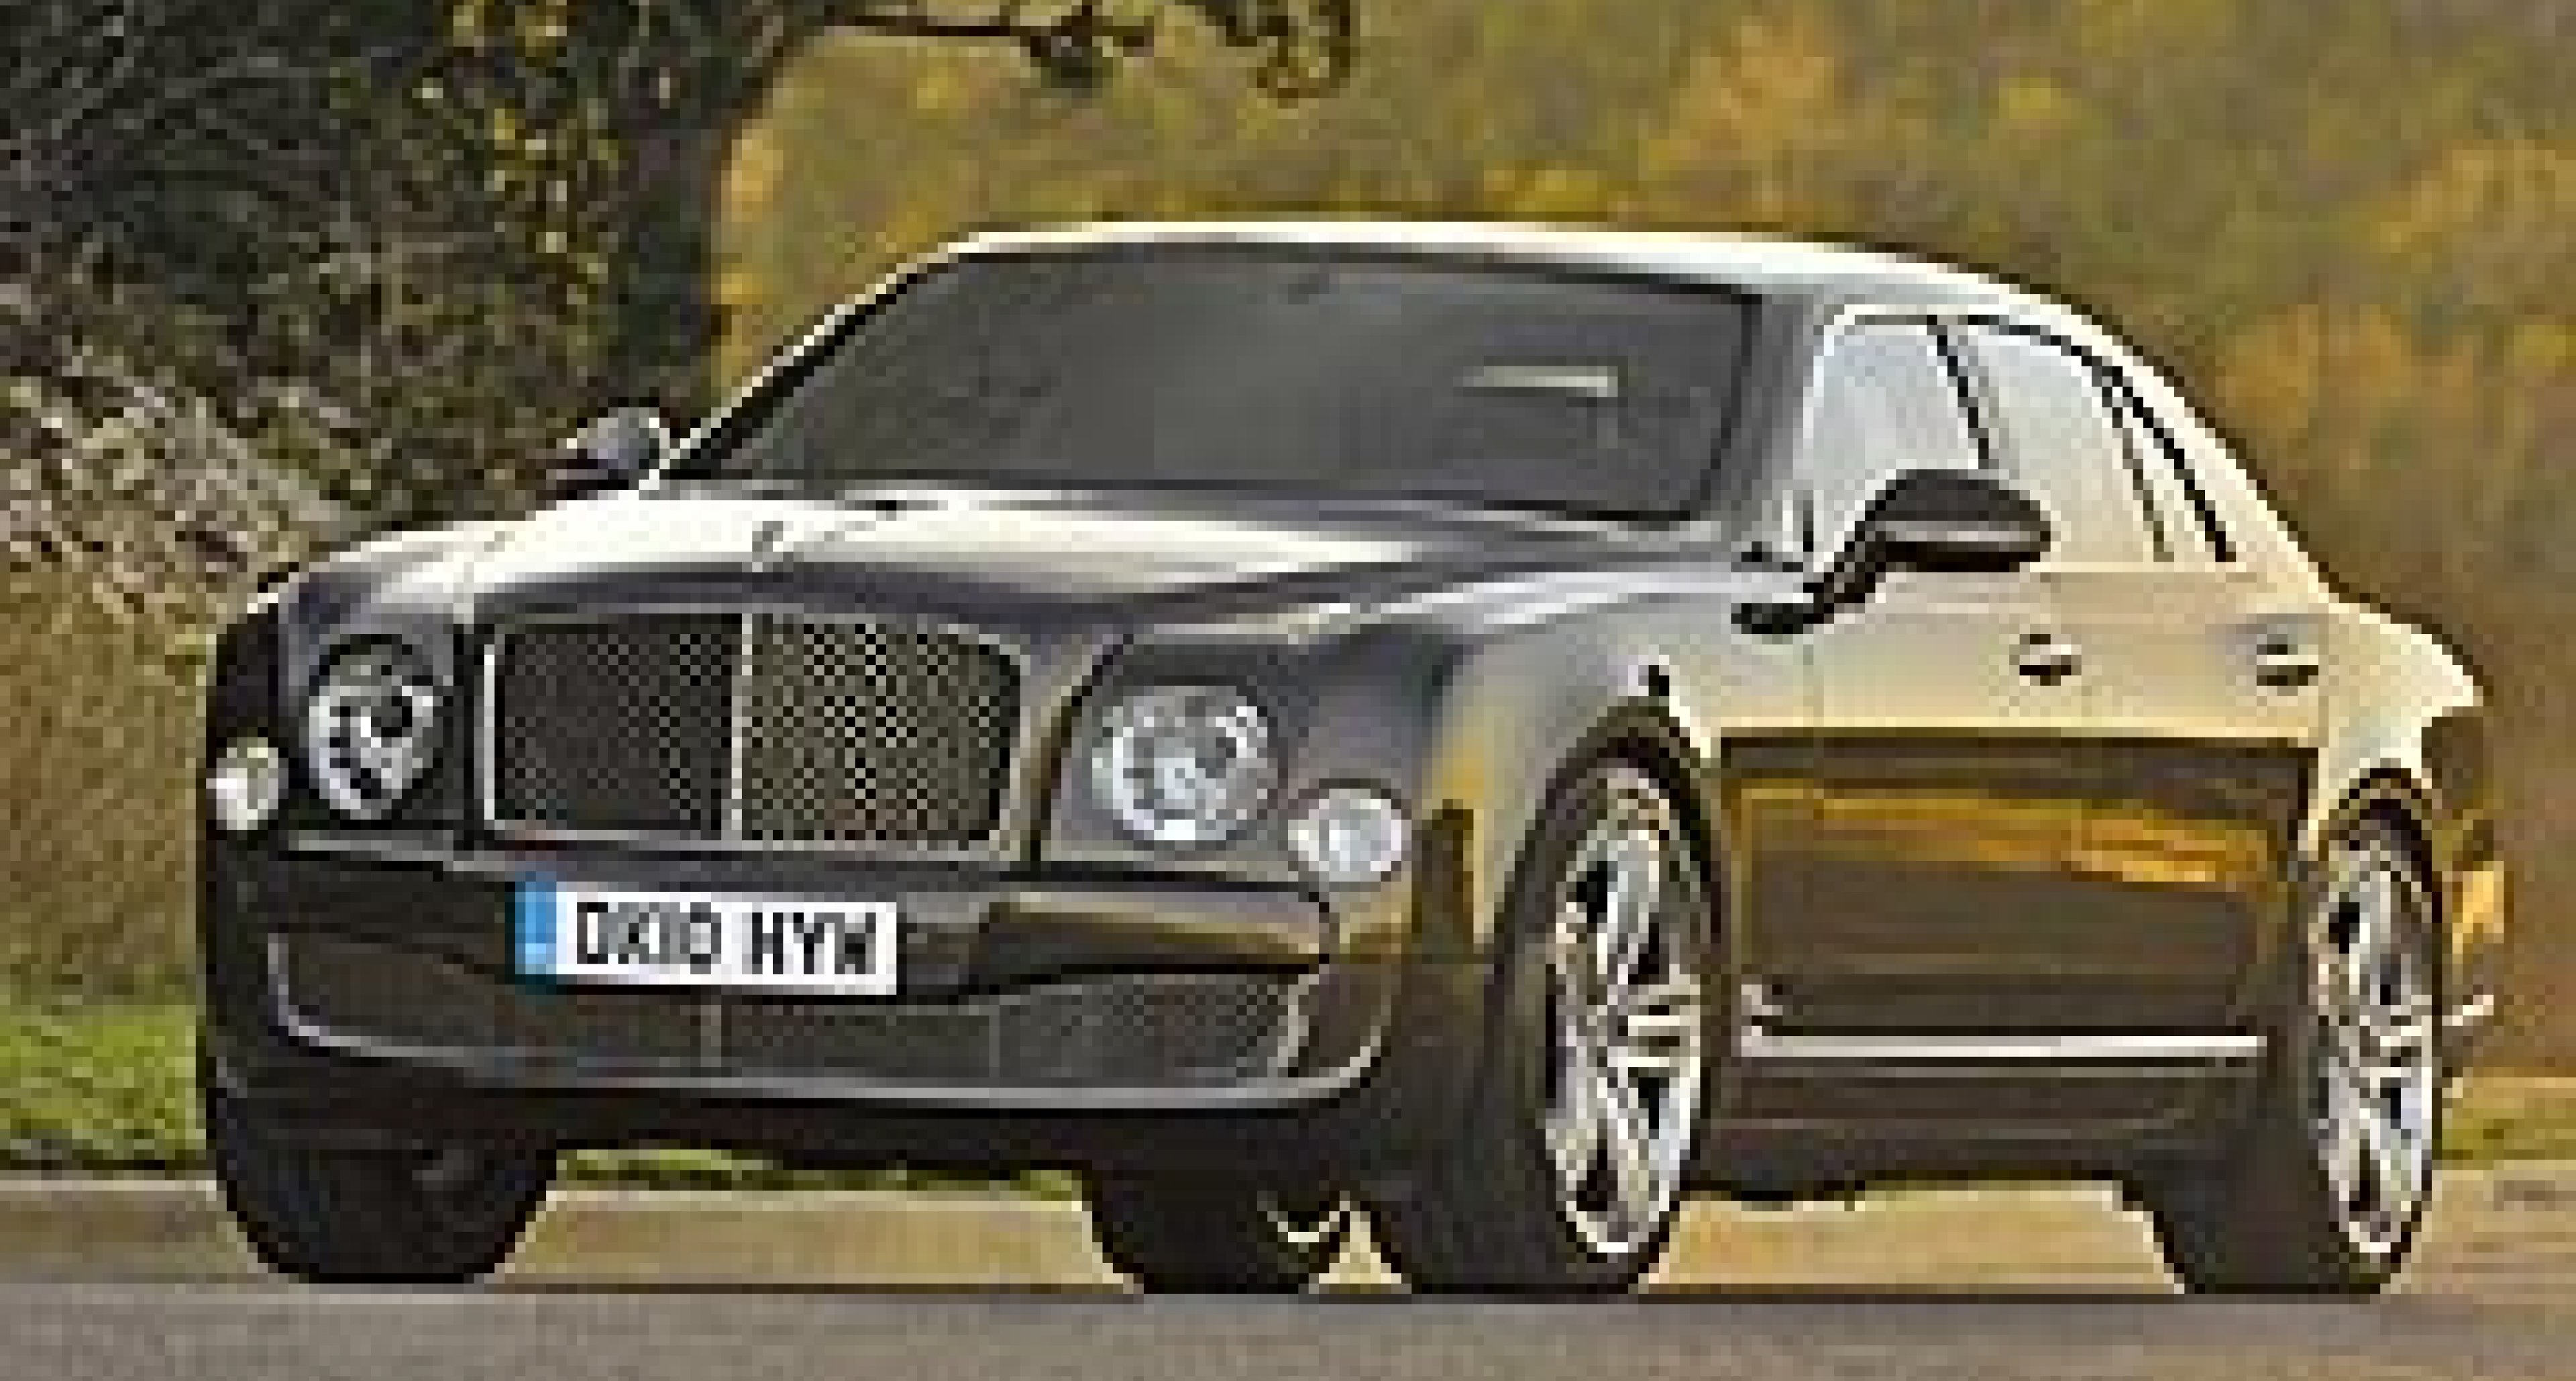 Bentley Mulsanne: Testing and Sign-Off